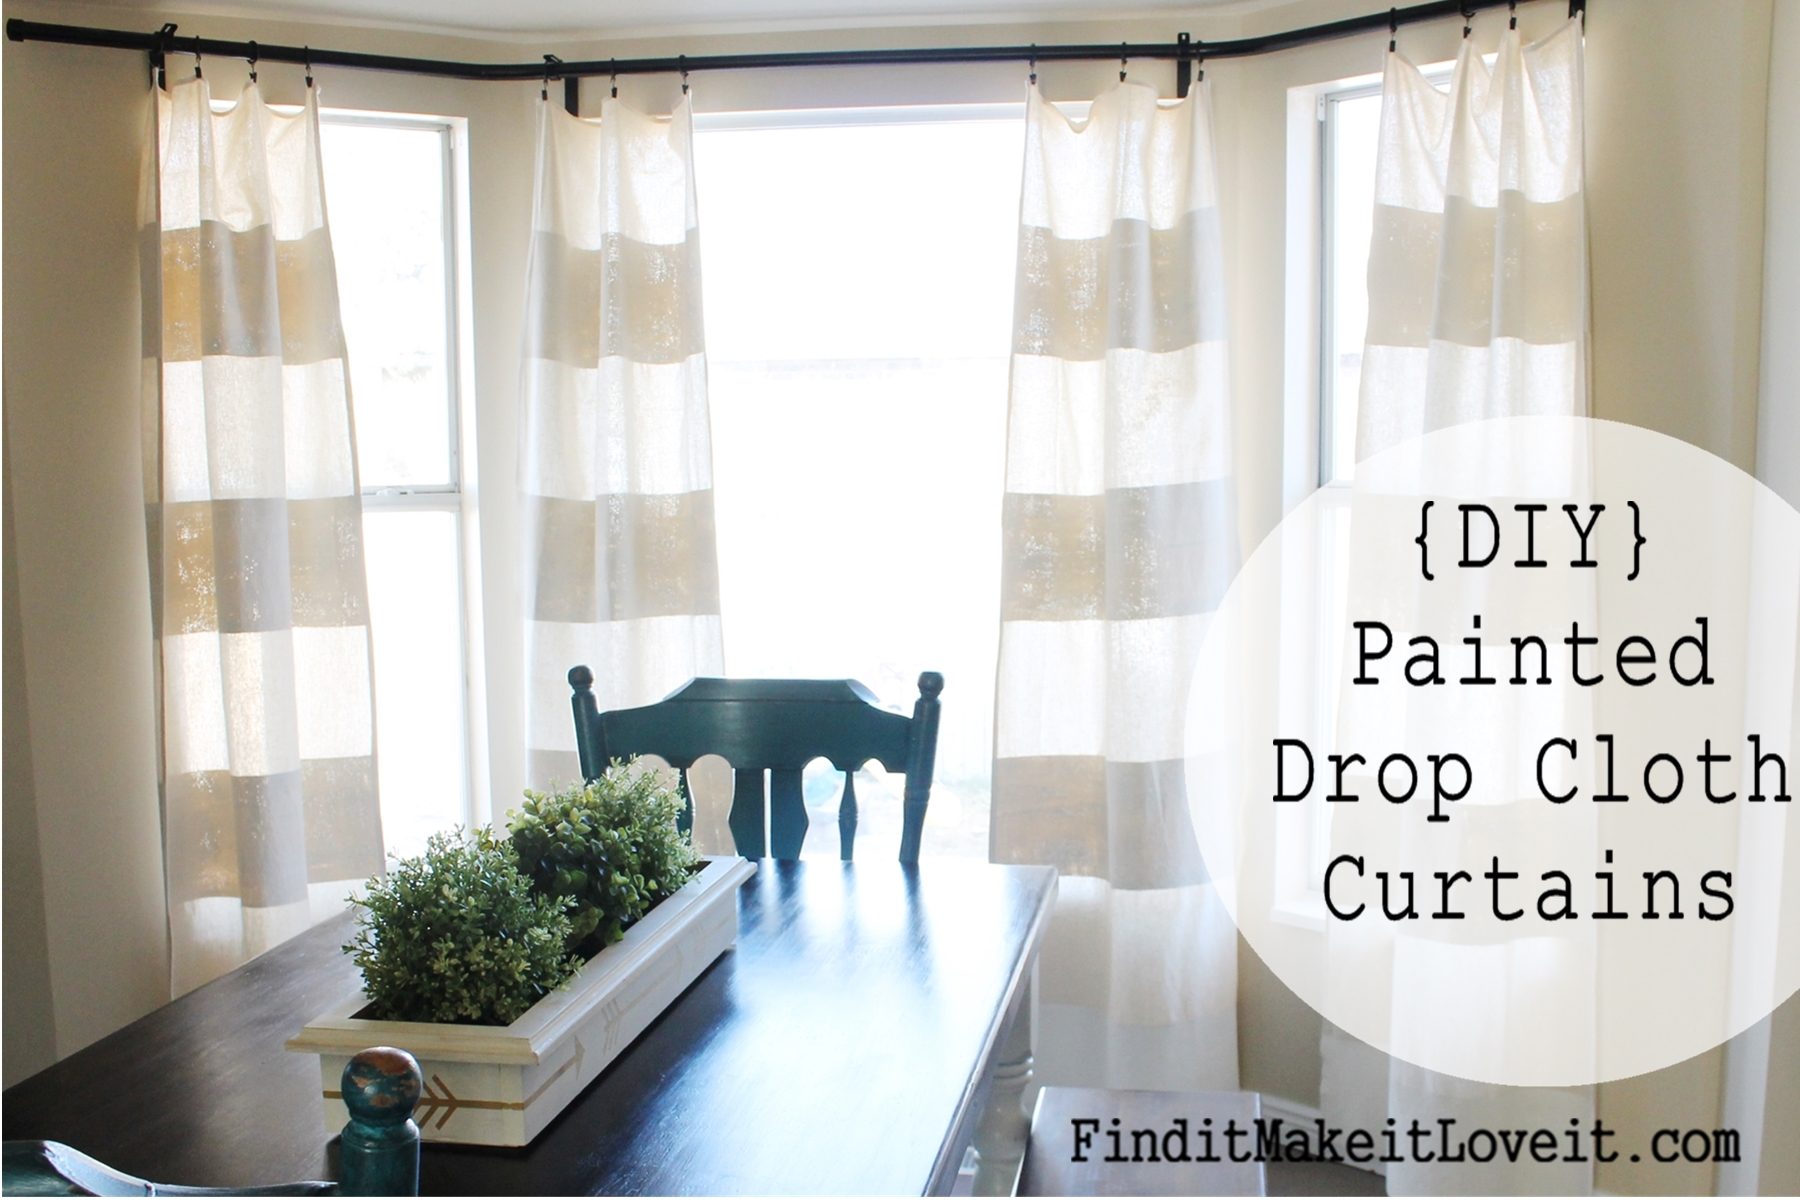 Diy Painted Drop Cloth Curtains Find It Make It Love It Within 8 Ft Drop Curtains (Image 8 of 15)